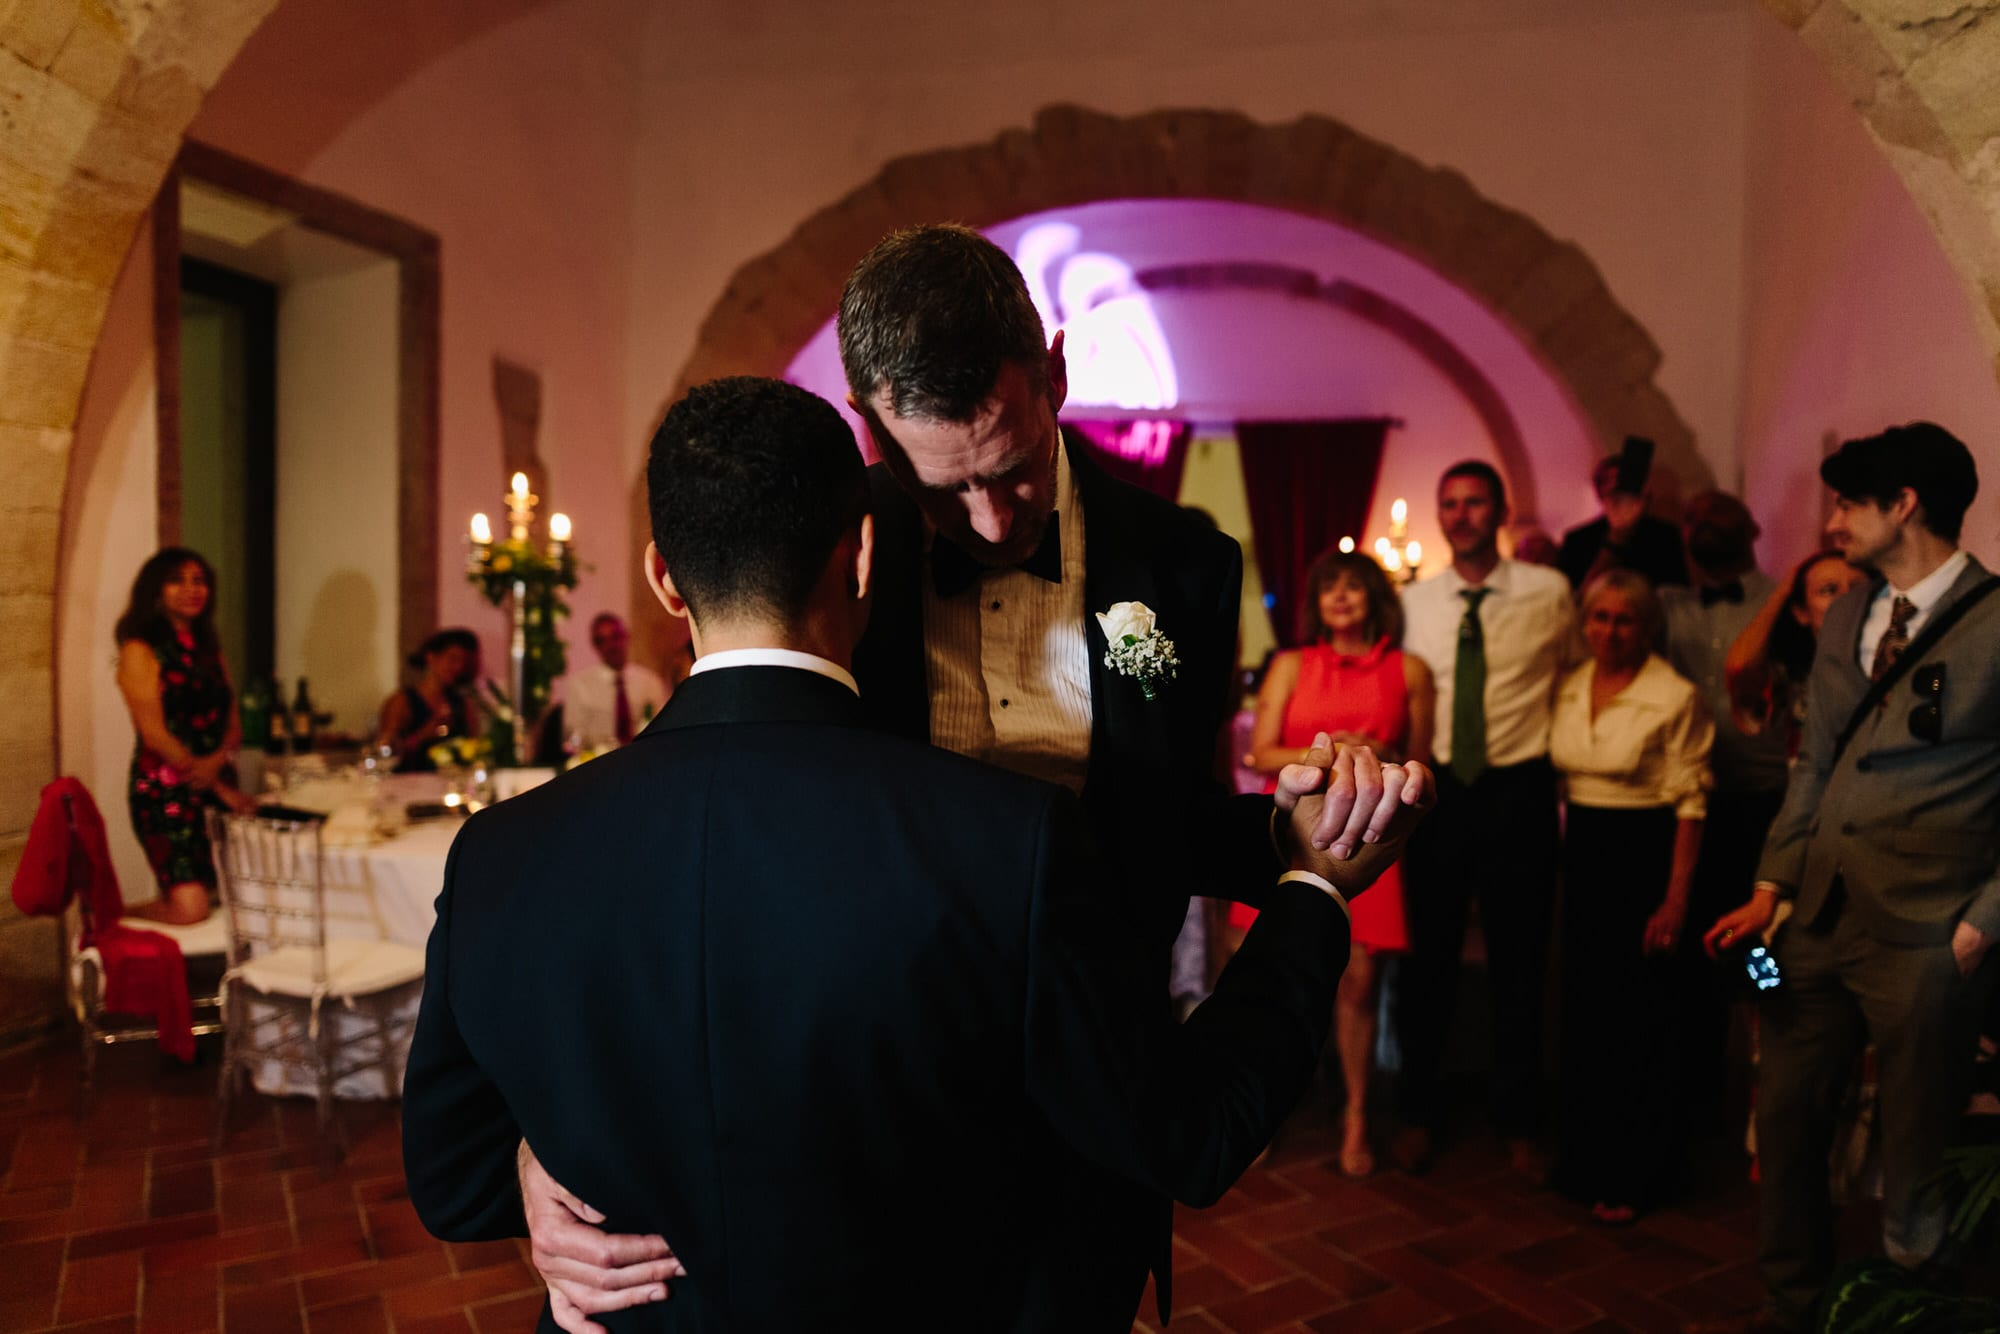 The grooms' first dance on their wedding day | Photo by Lisbon Photographer Your Story in Photos